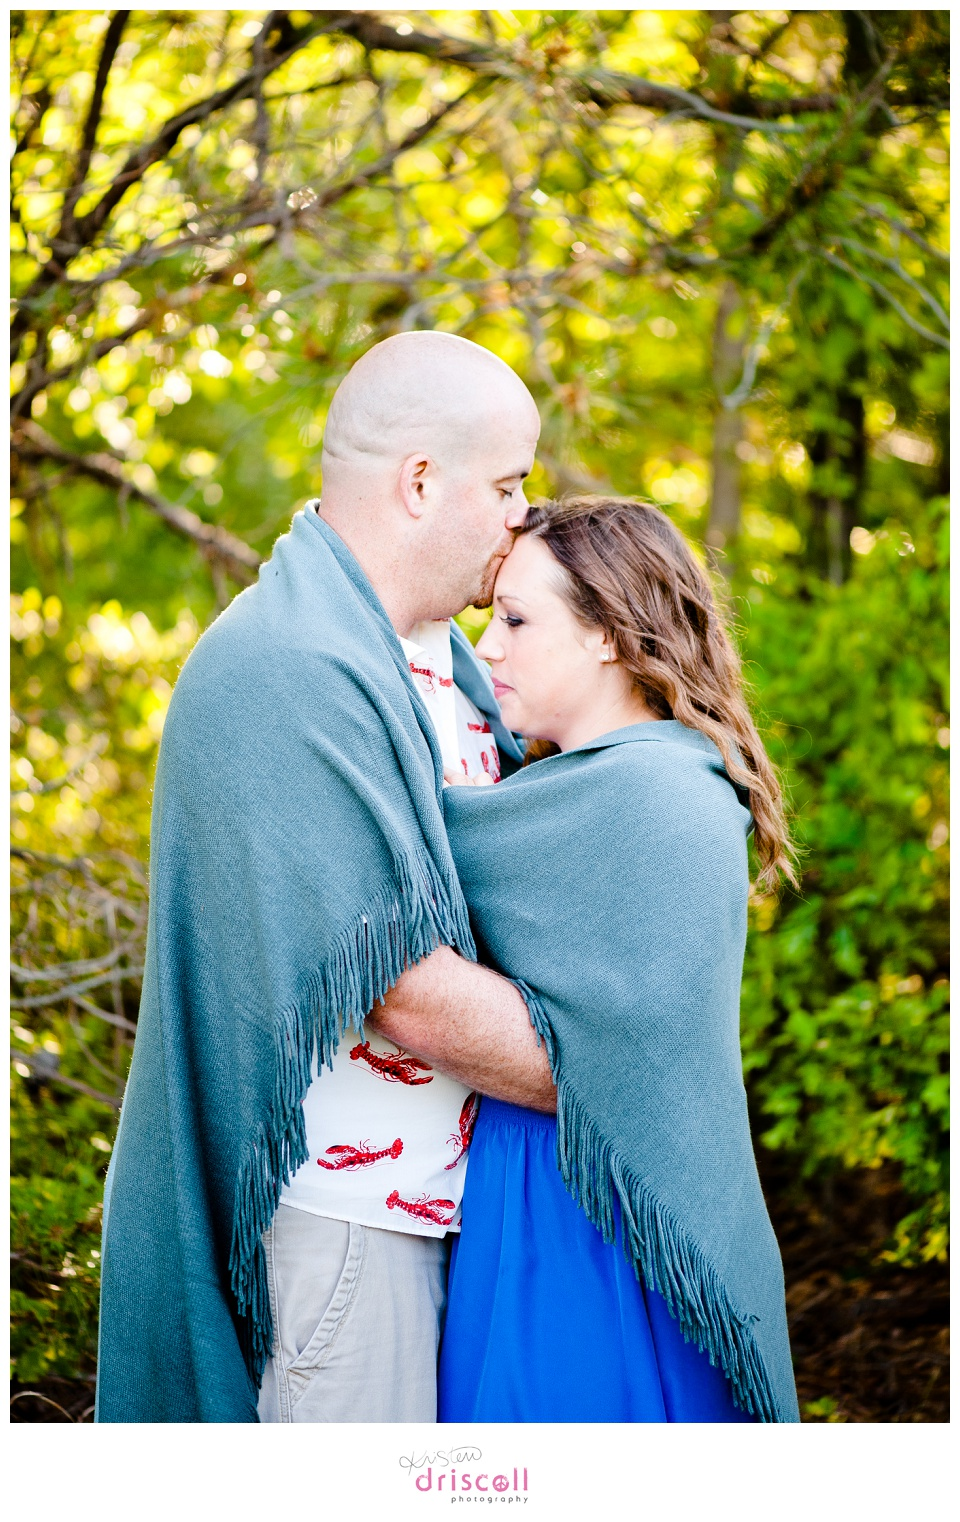 tinton-falls-engagement-photos-kristen-driscoll-20130605-3049